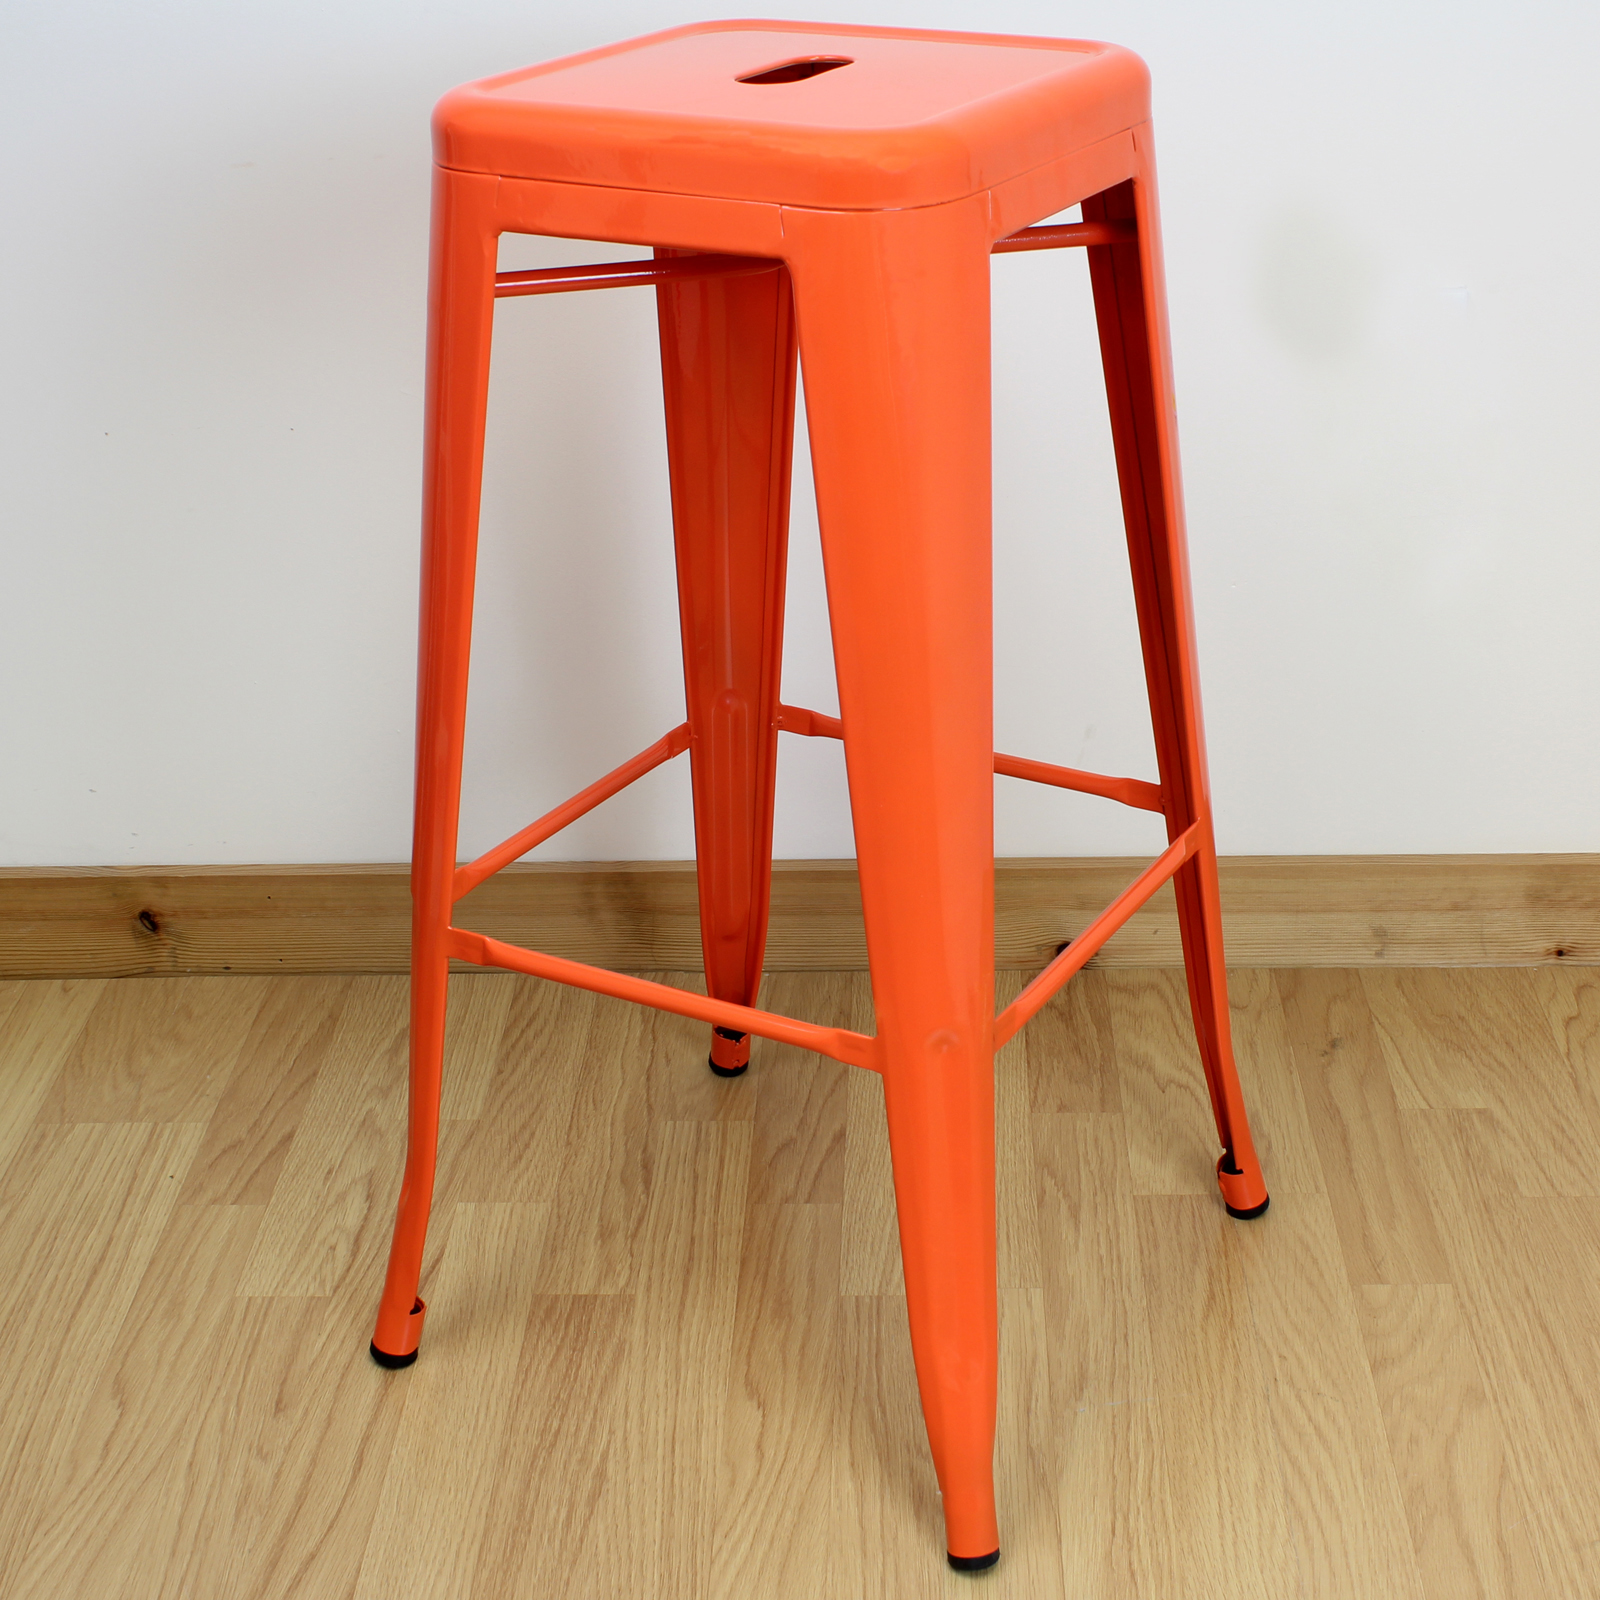 Set of 2 Two Orange High Stools Industrial Breakfast Bar Cafe